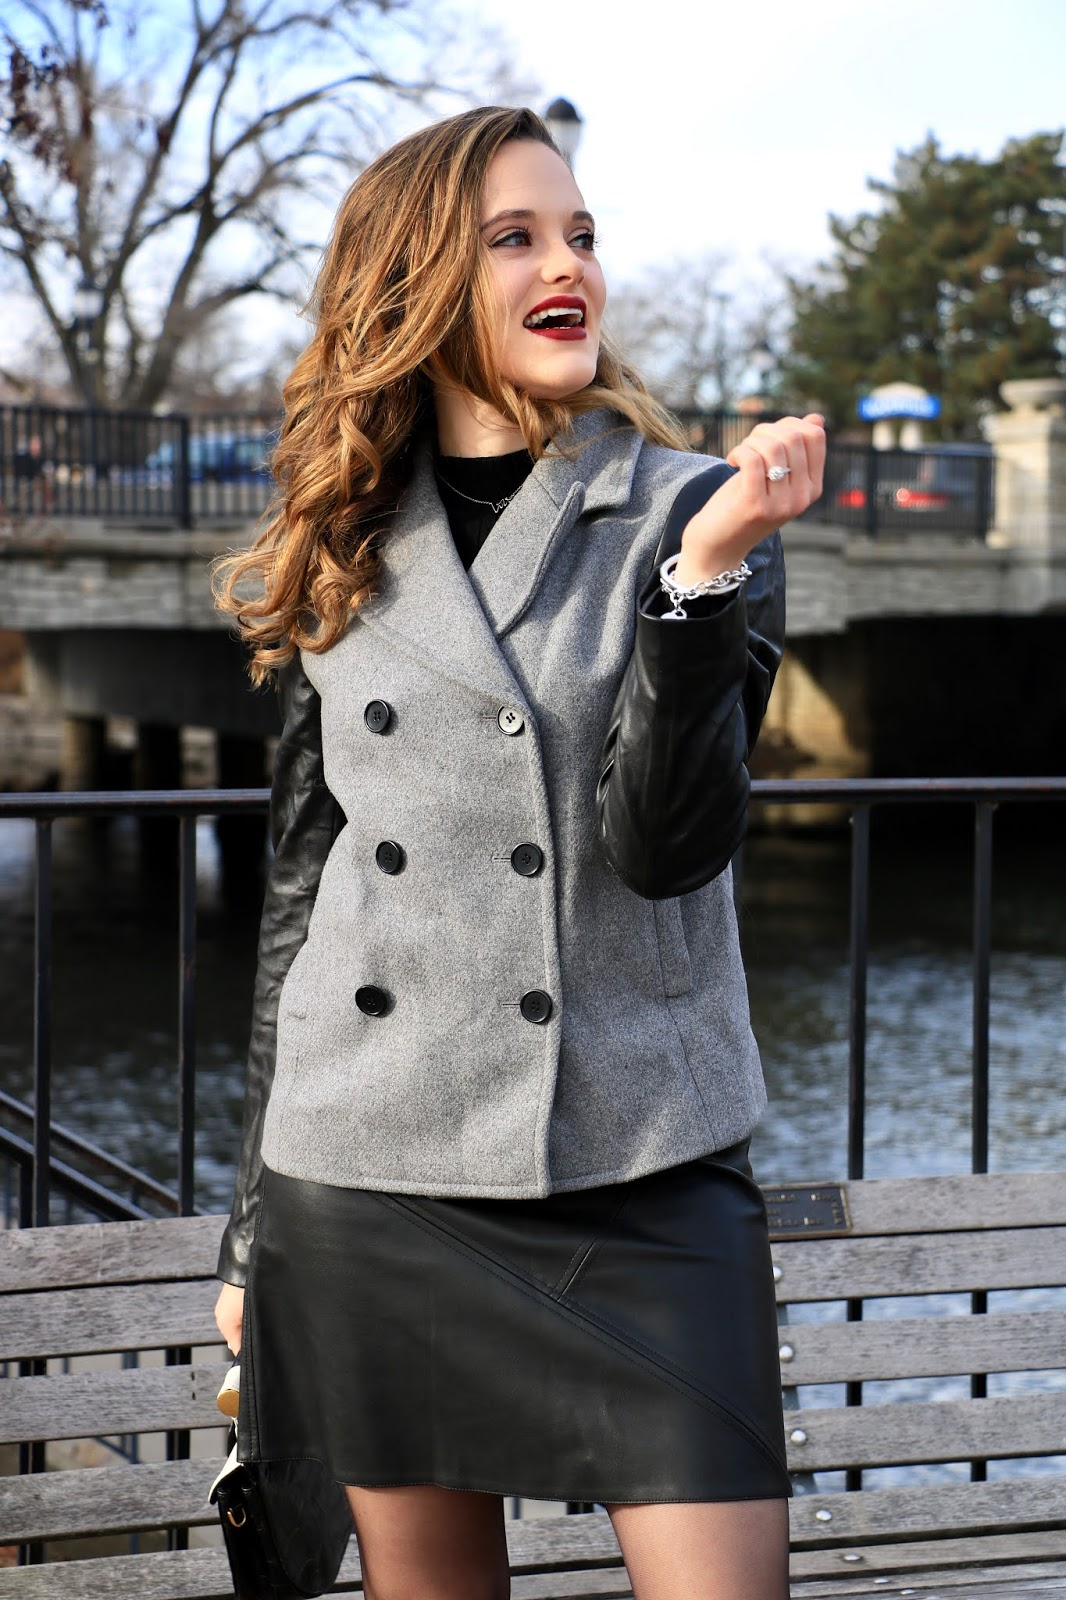 Nyc fashion blogger Kathleen Harper wearing a peacoat and leather mini skirt in winter 2020.